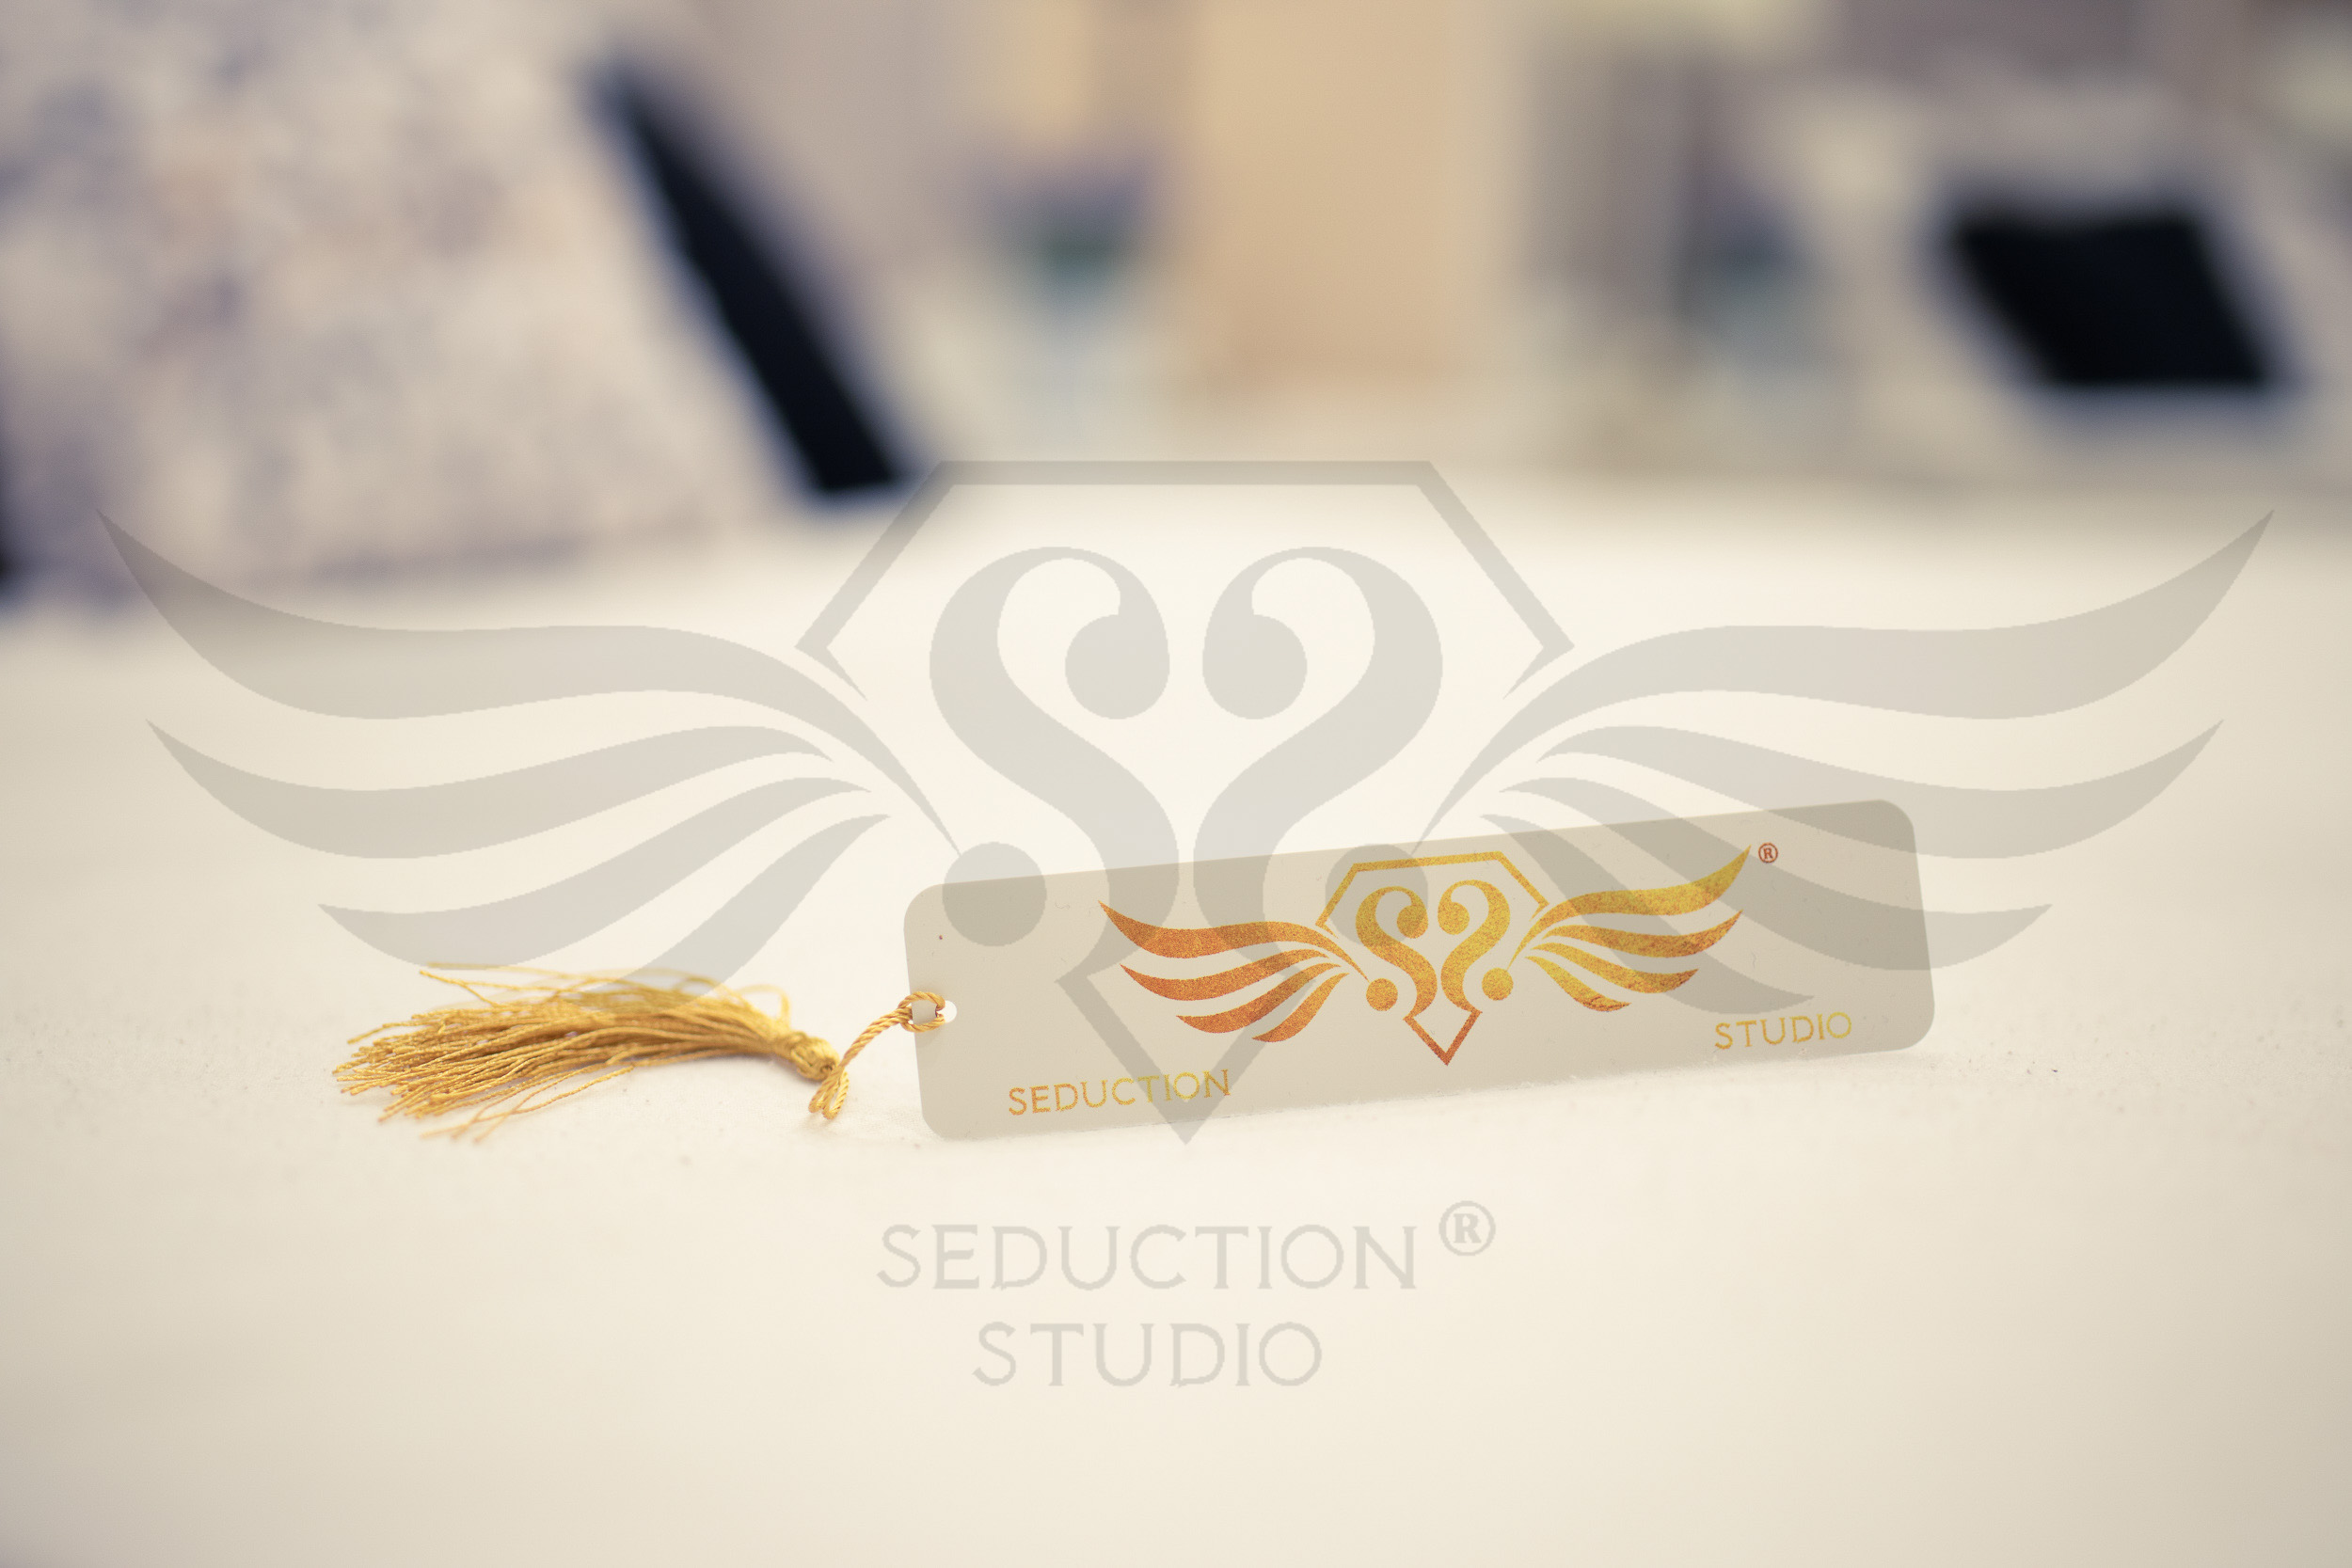 Seduction Studio